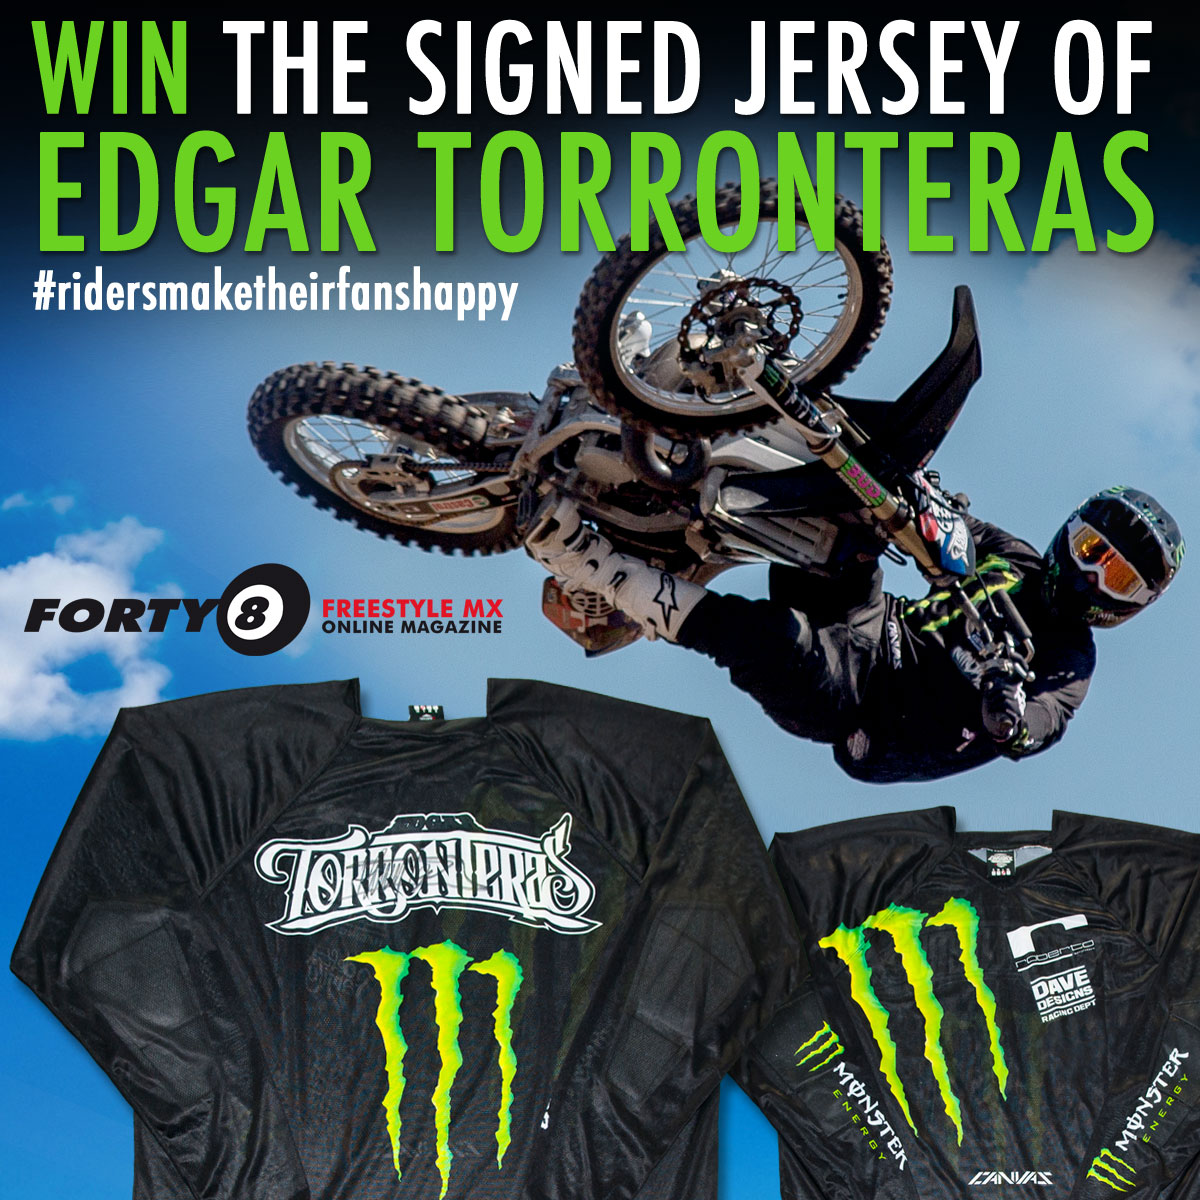 click here to view a large image of Edgar Torronterass Gear